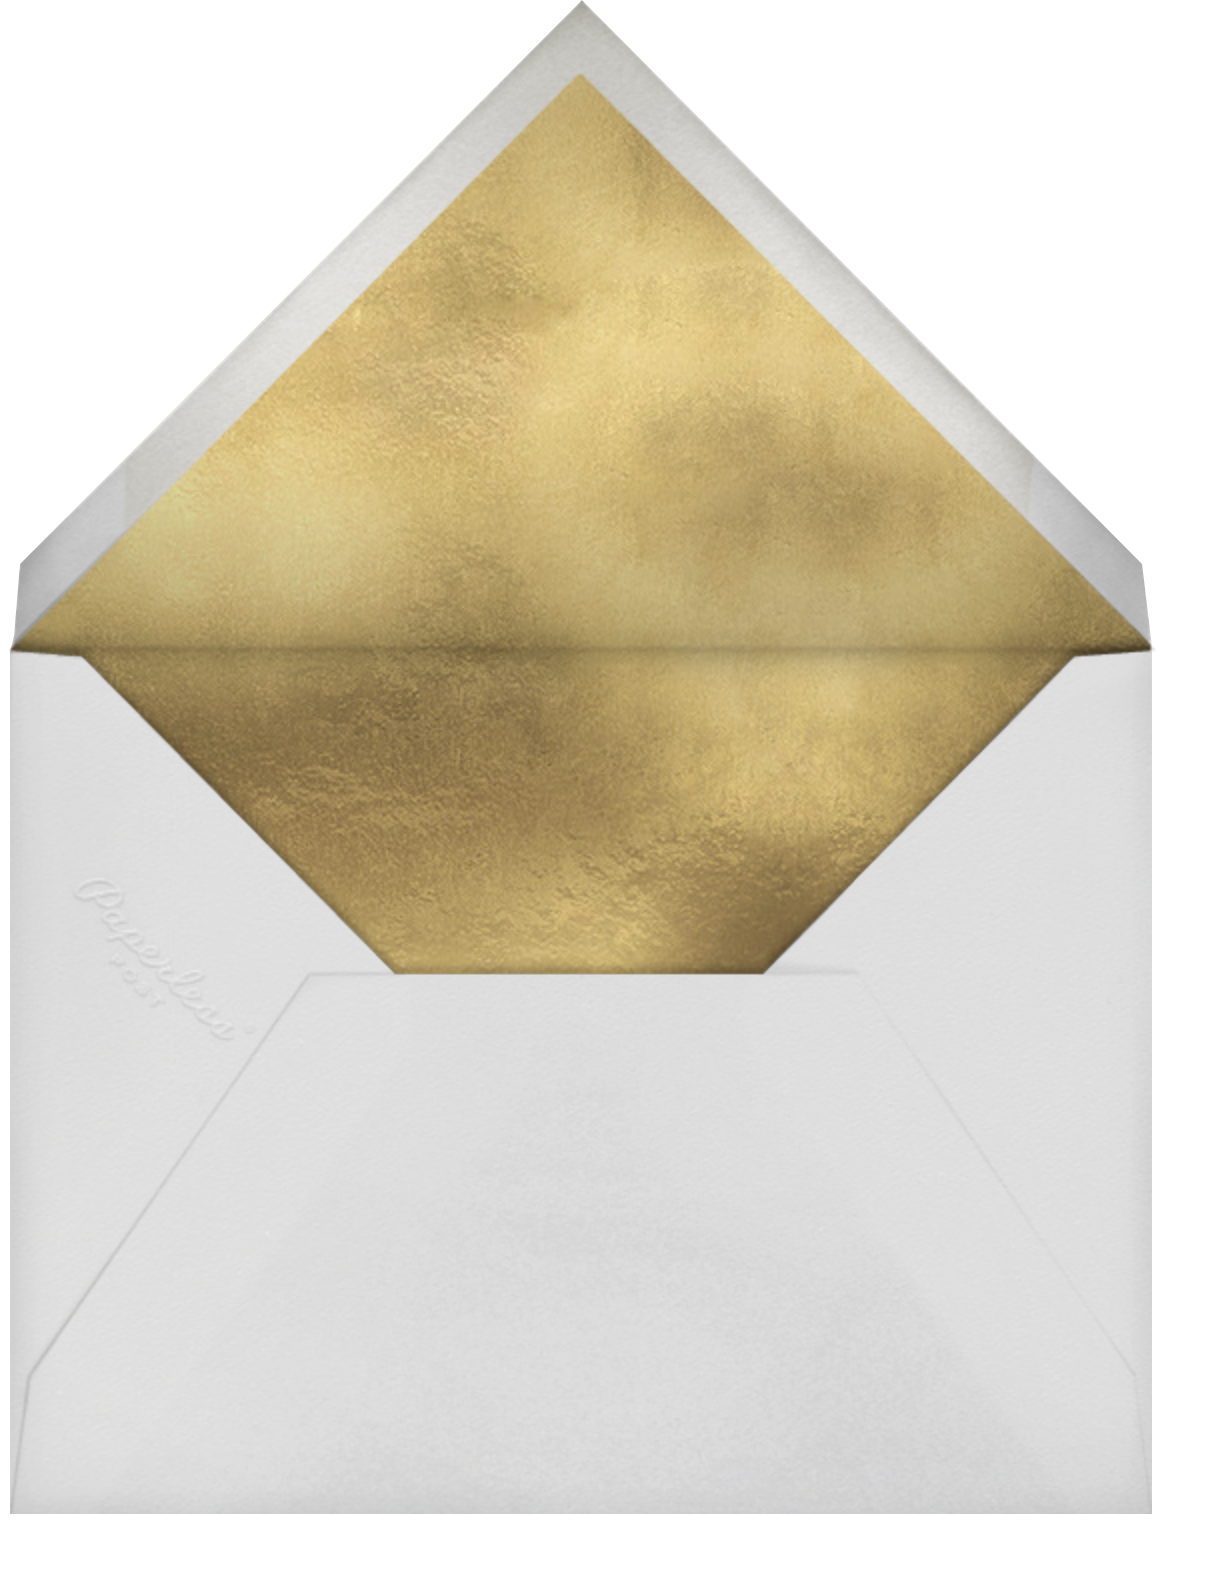 Gold Dove - kate spade new york - Save the date - envelope back